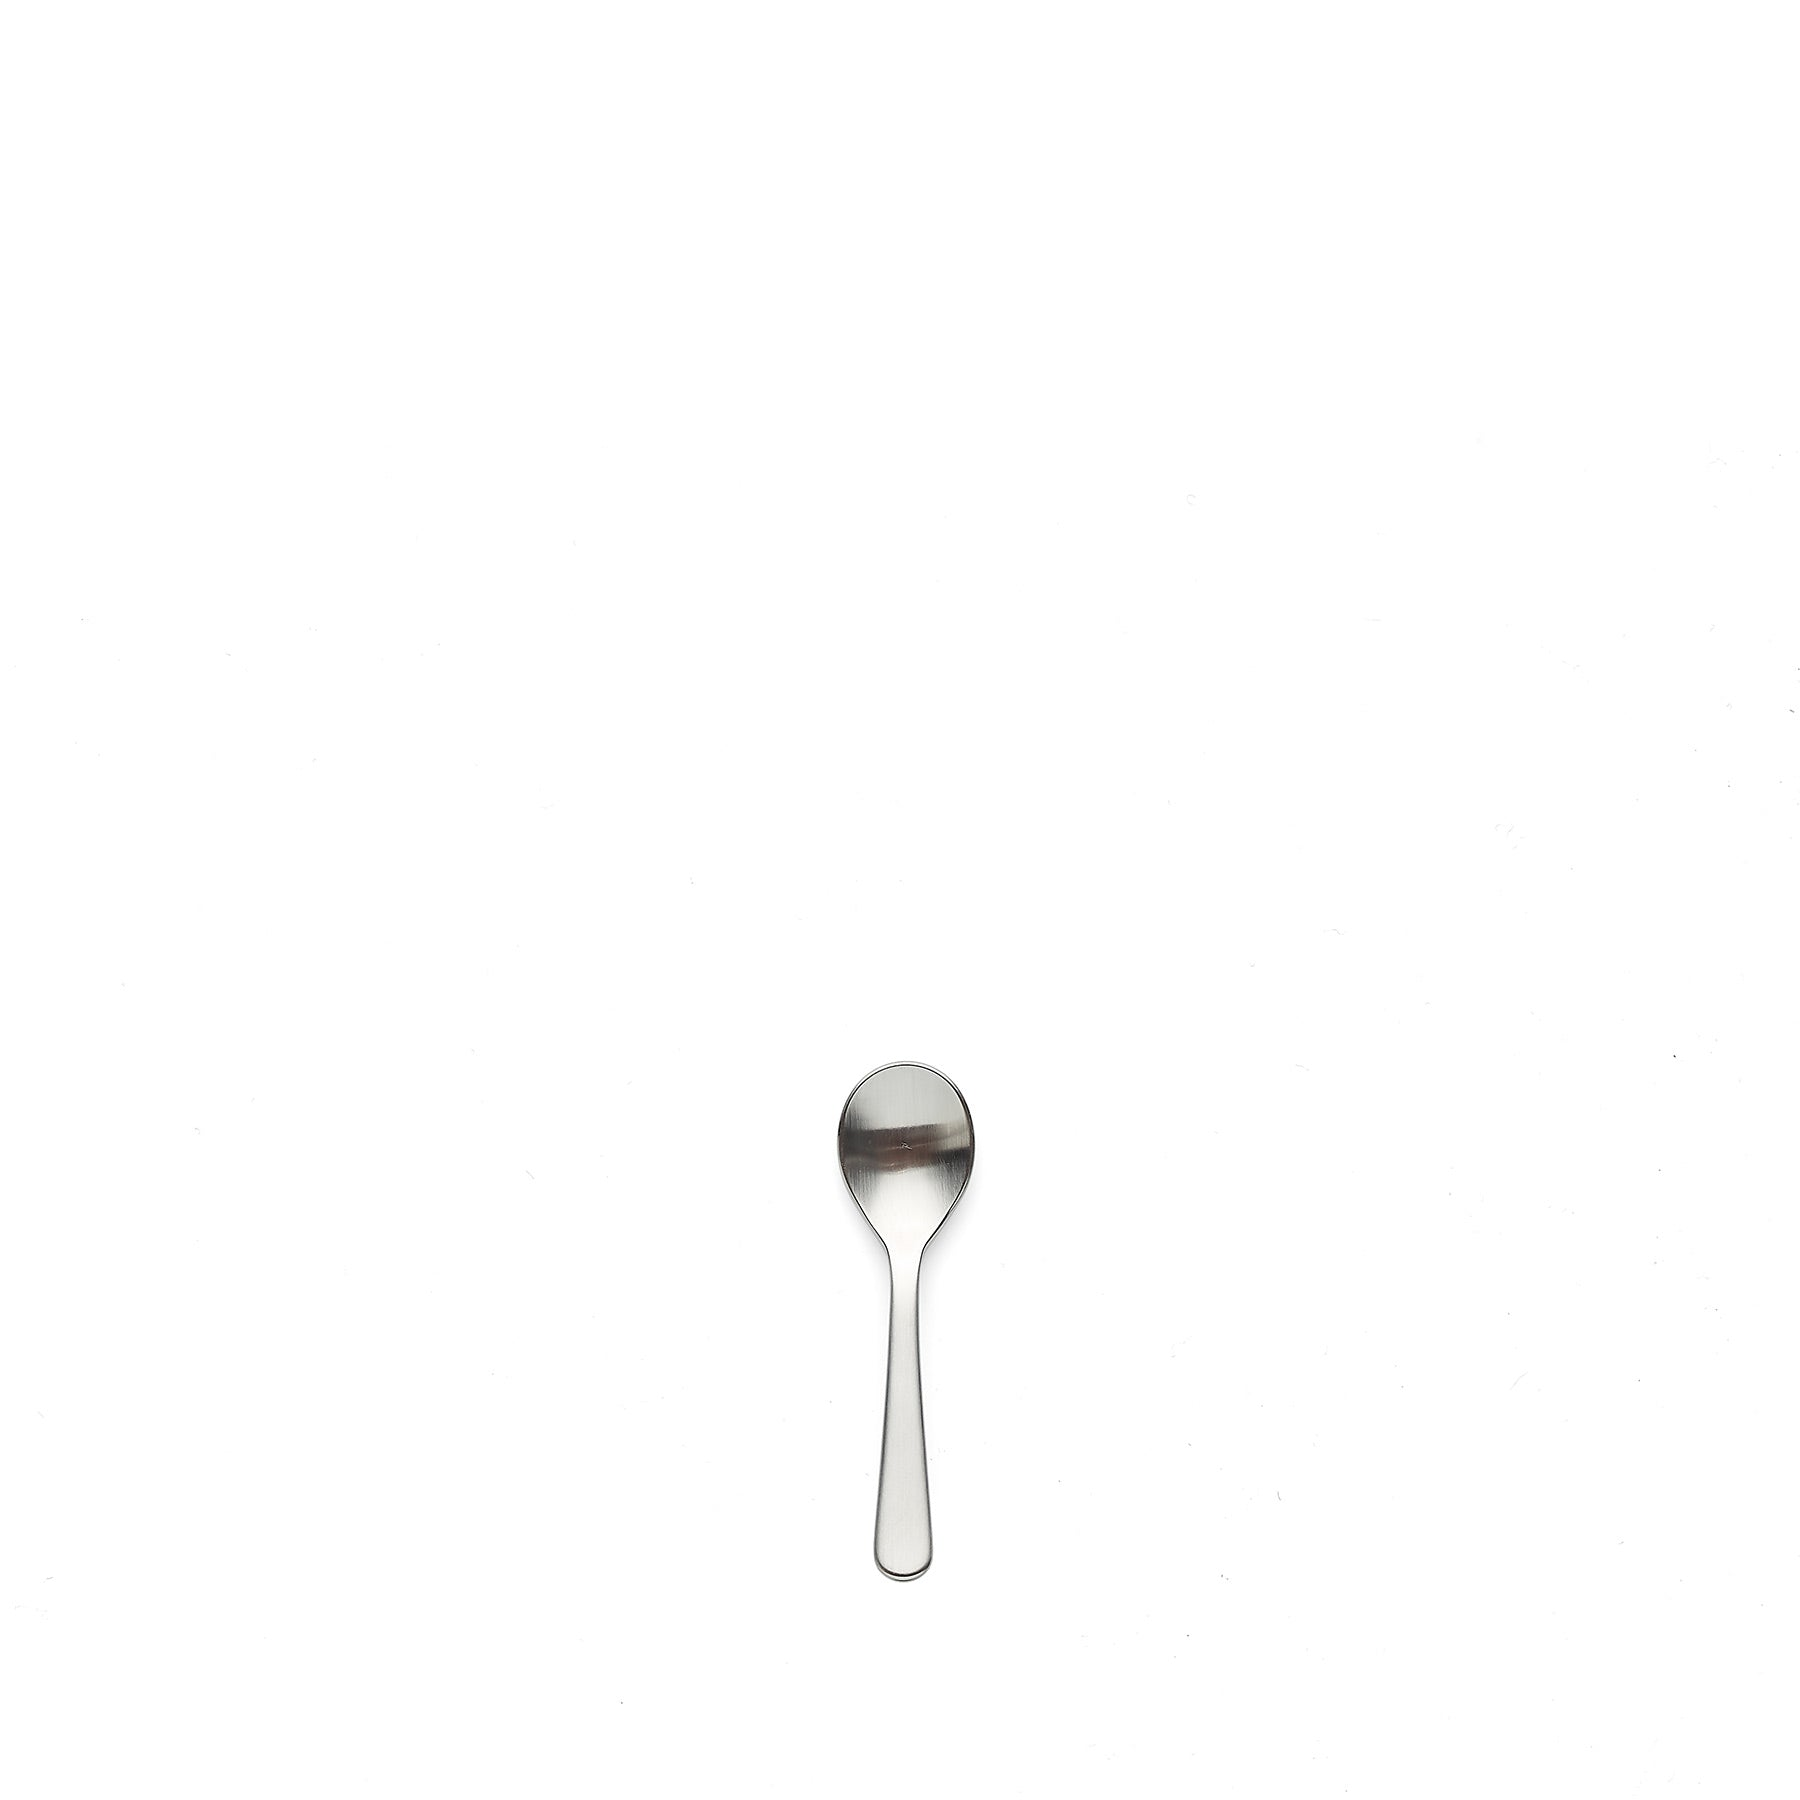 Stainless Steel Salt Spoon Zoom Image 1